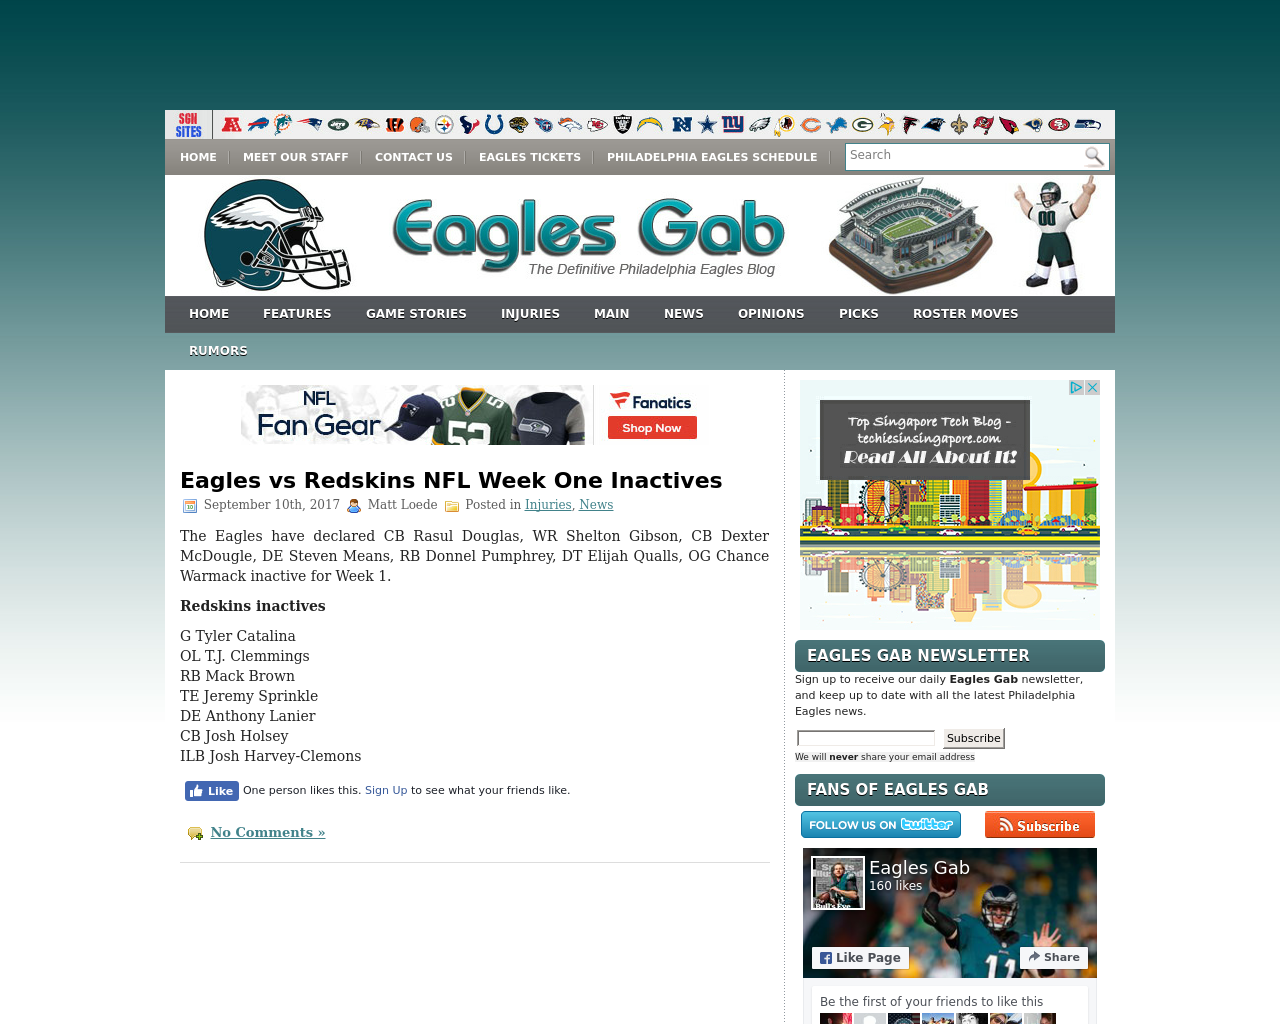 Eagles-Gab-Advertising-Reviews-Pricing